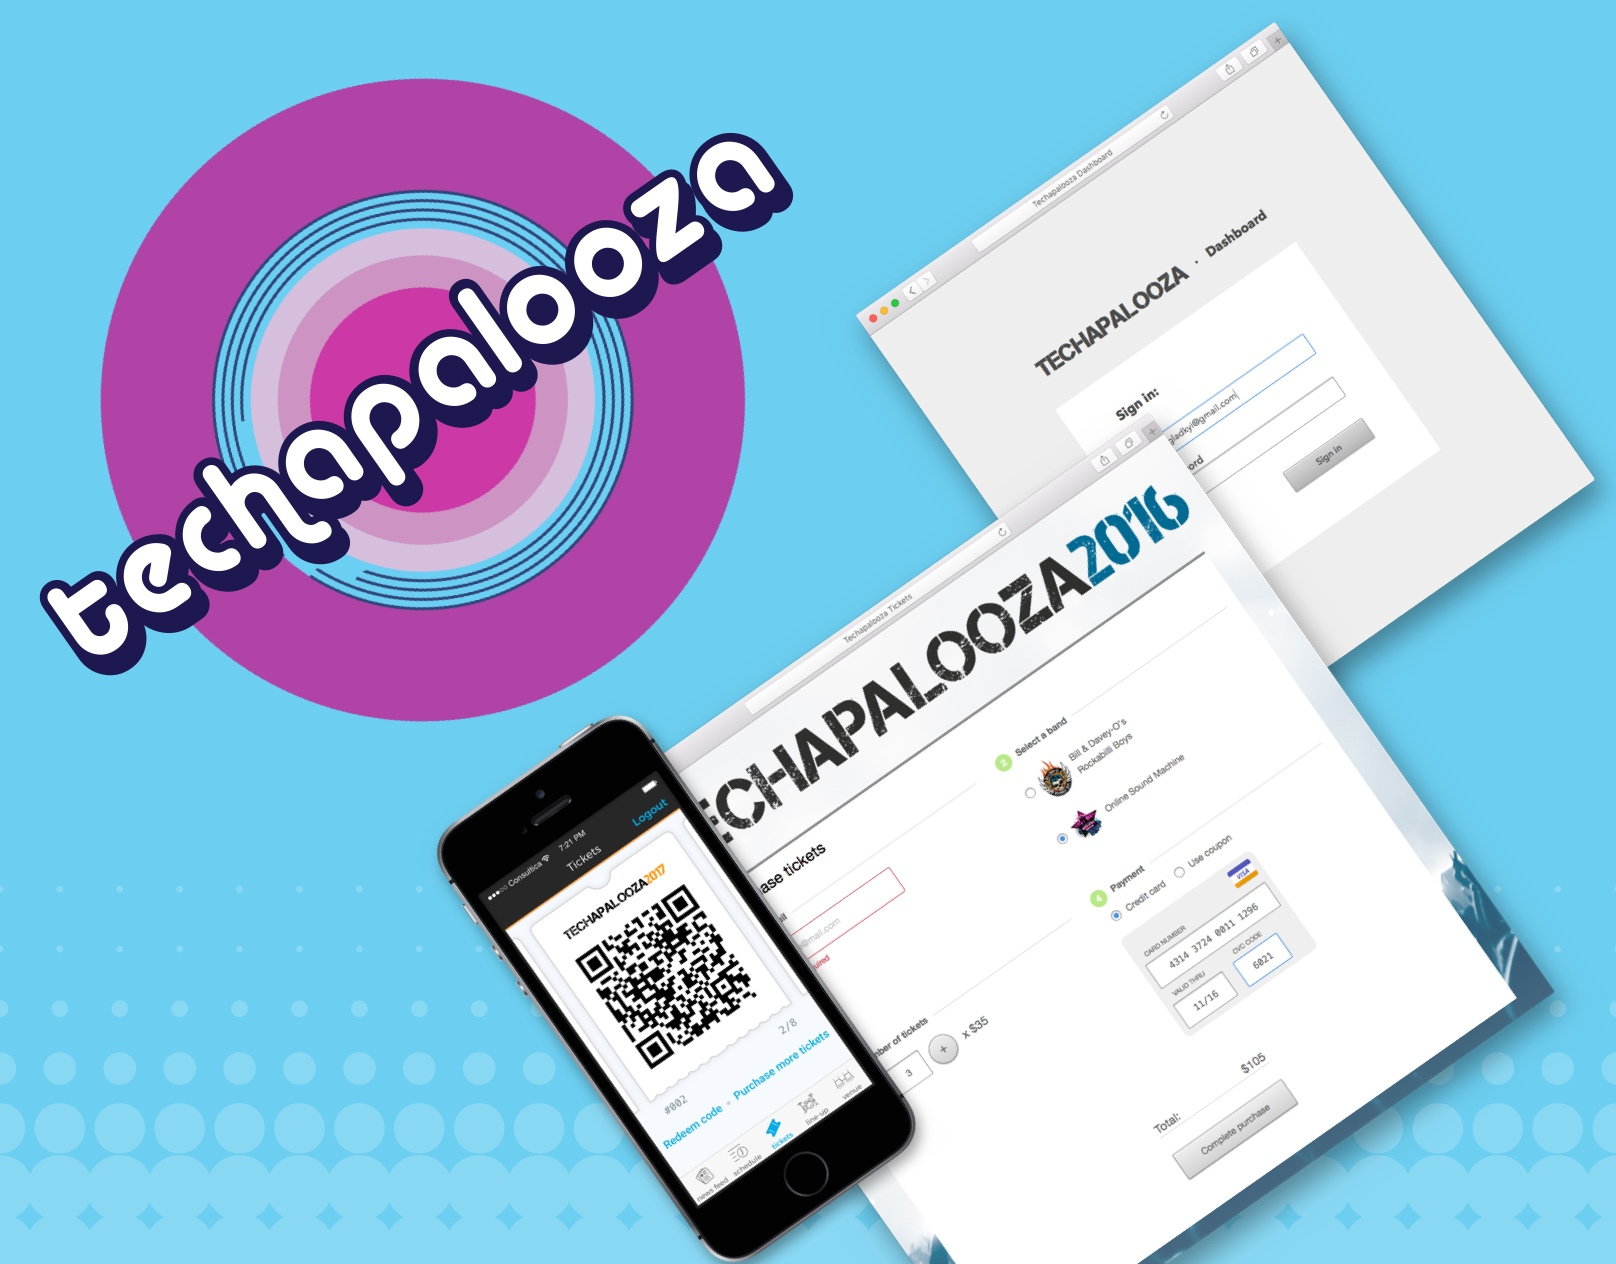 Mobile apps, dashboard and tickets page for Techapalooza